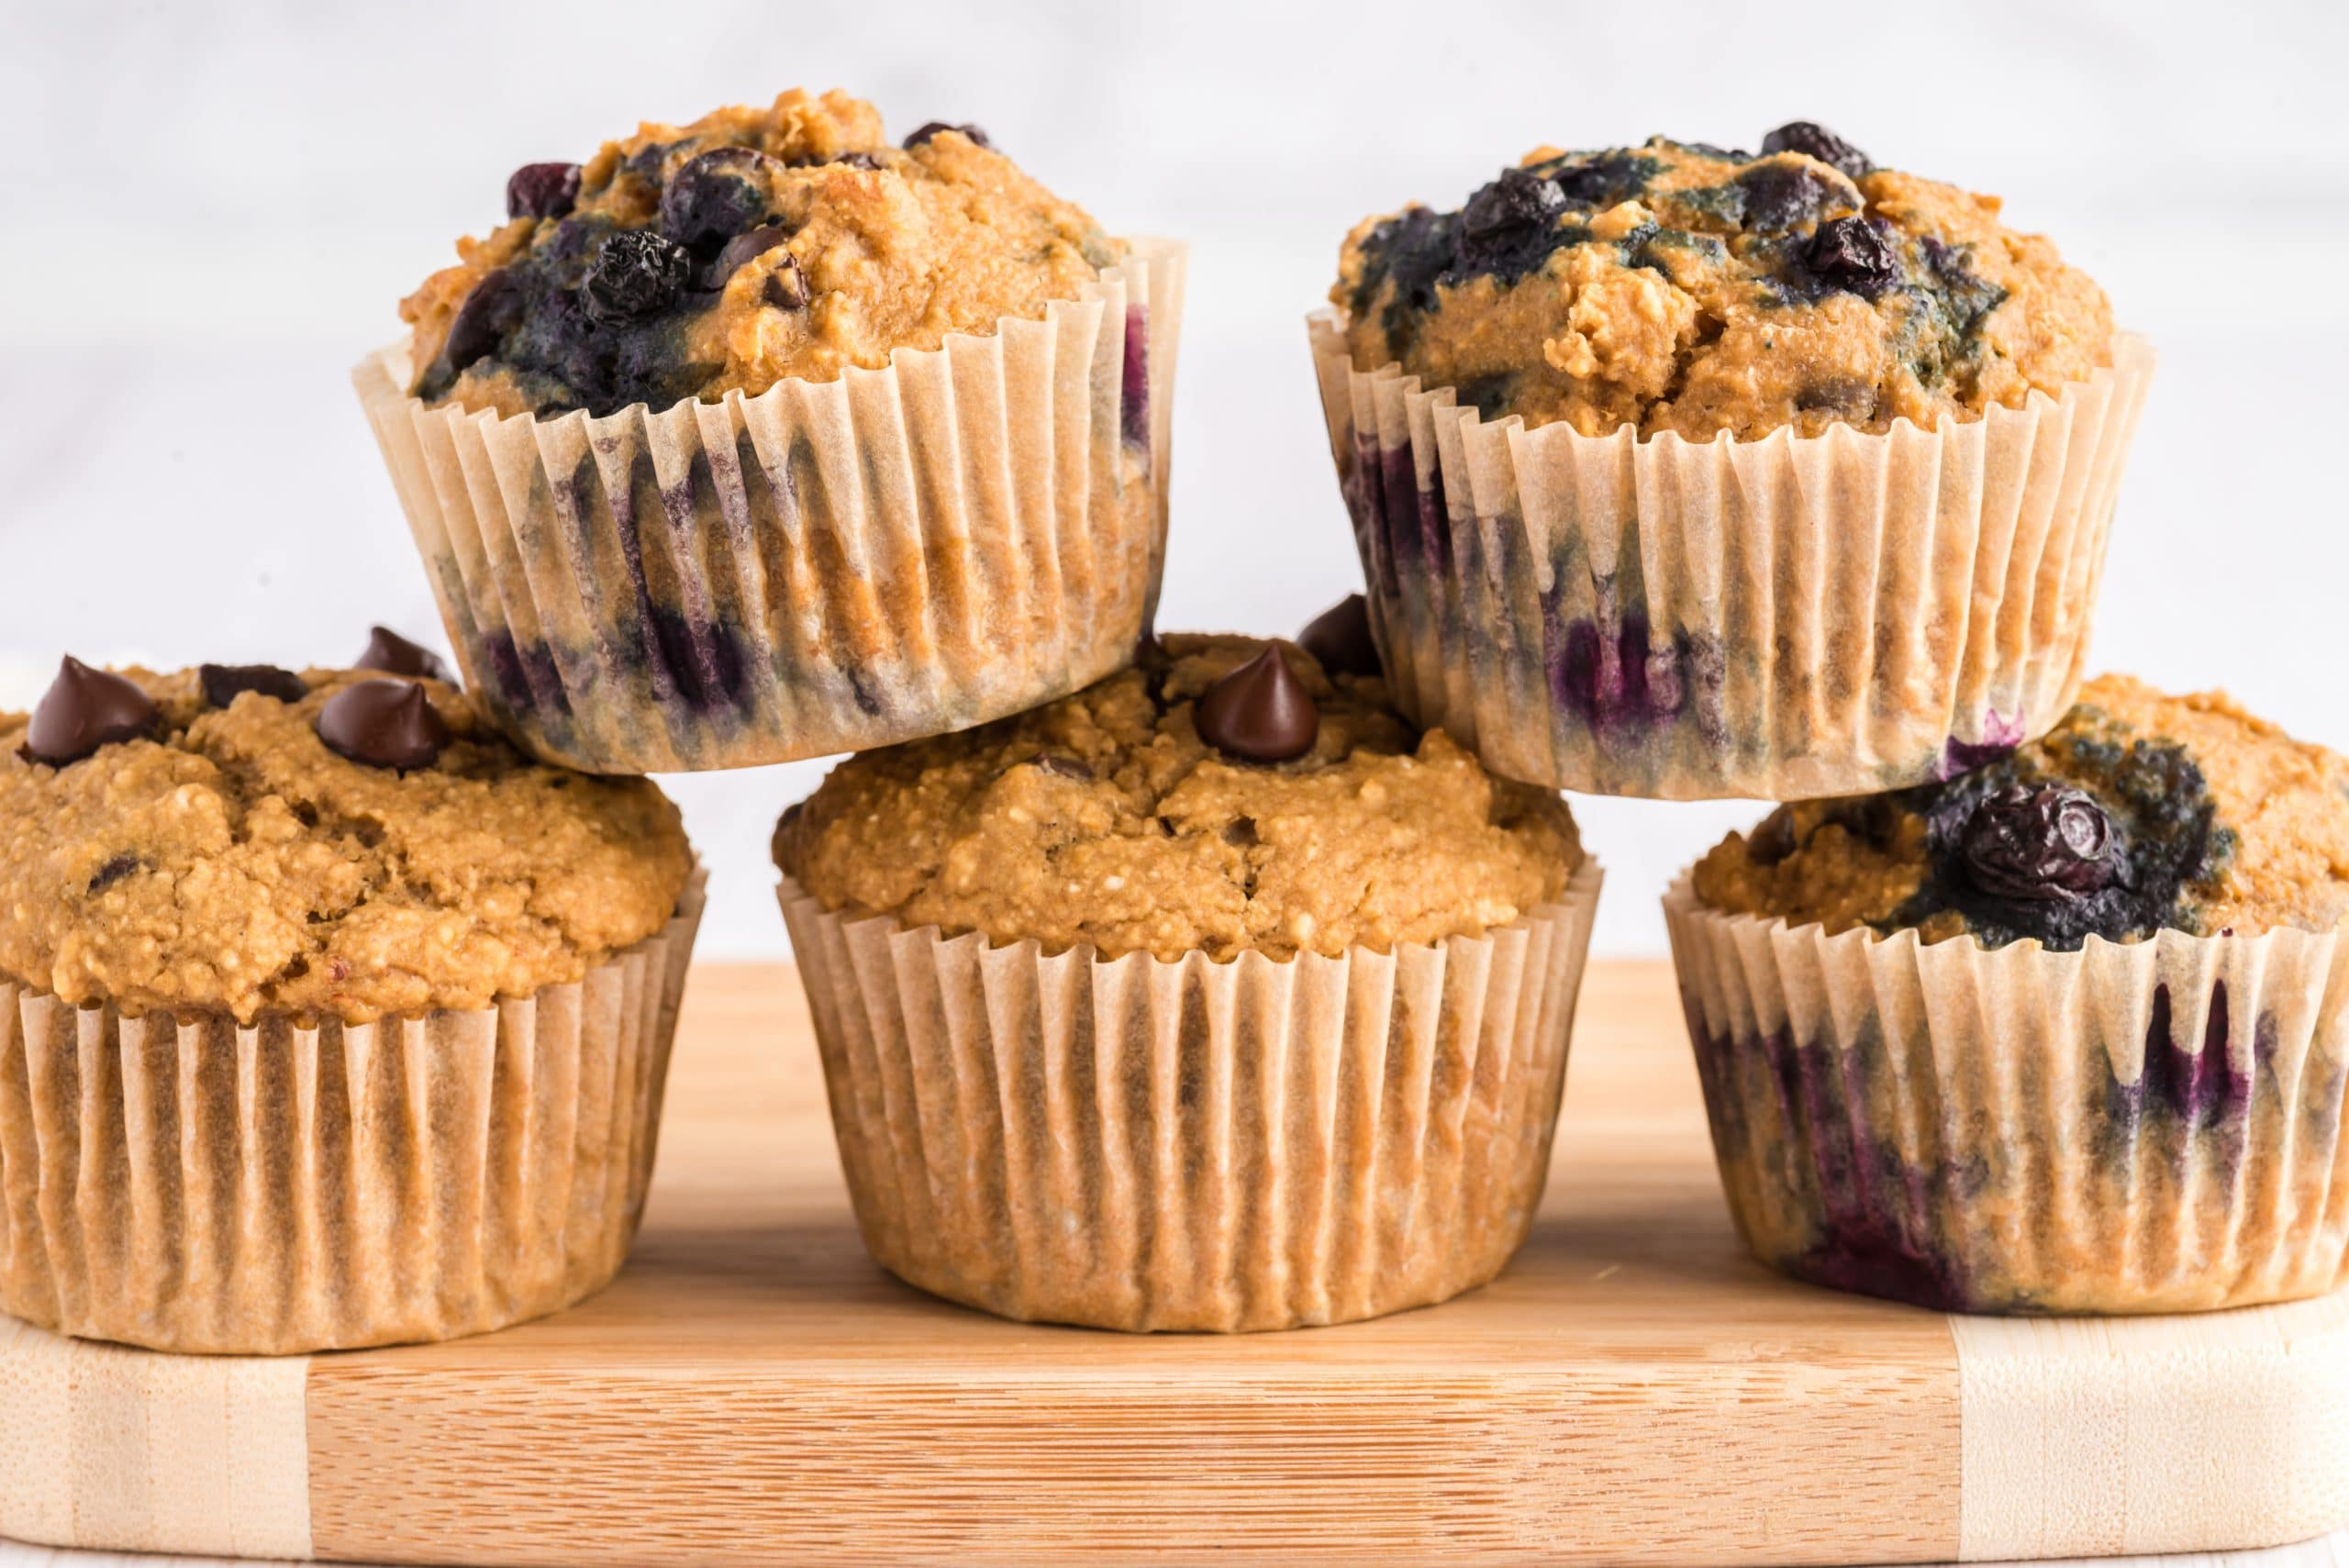 muffins stacked in two rows